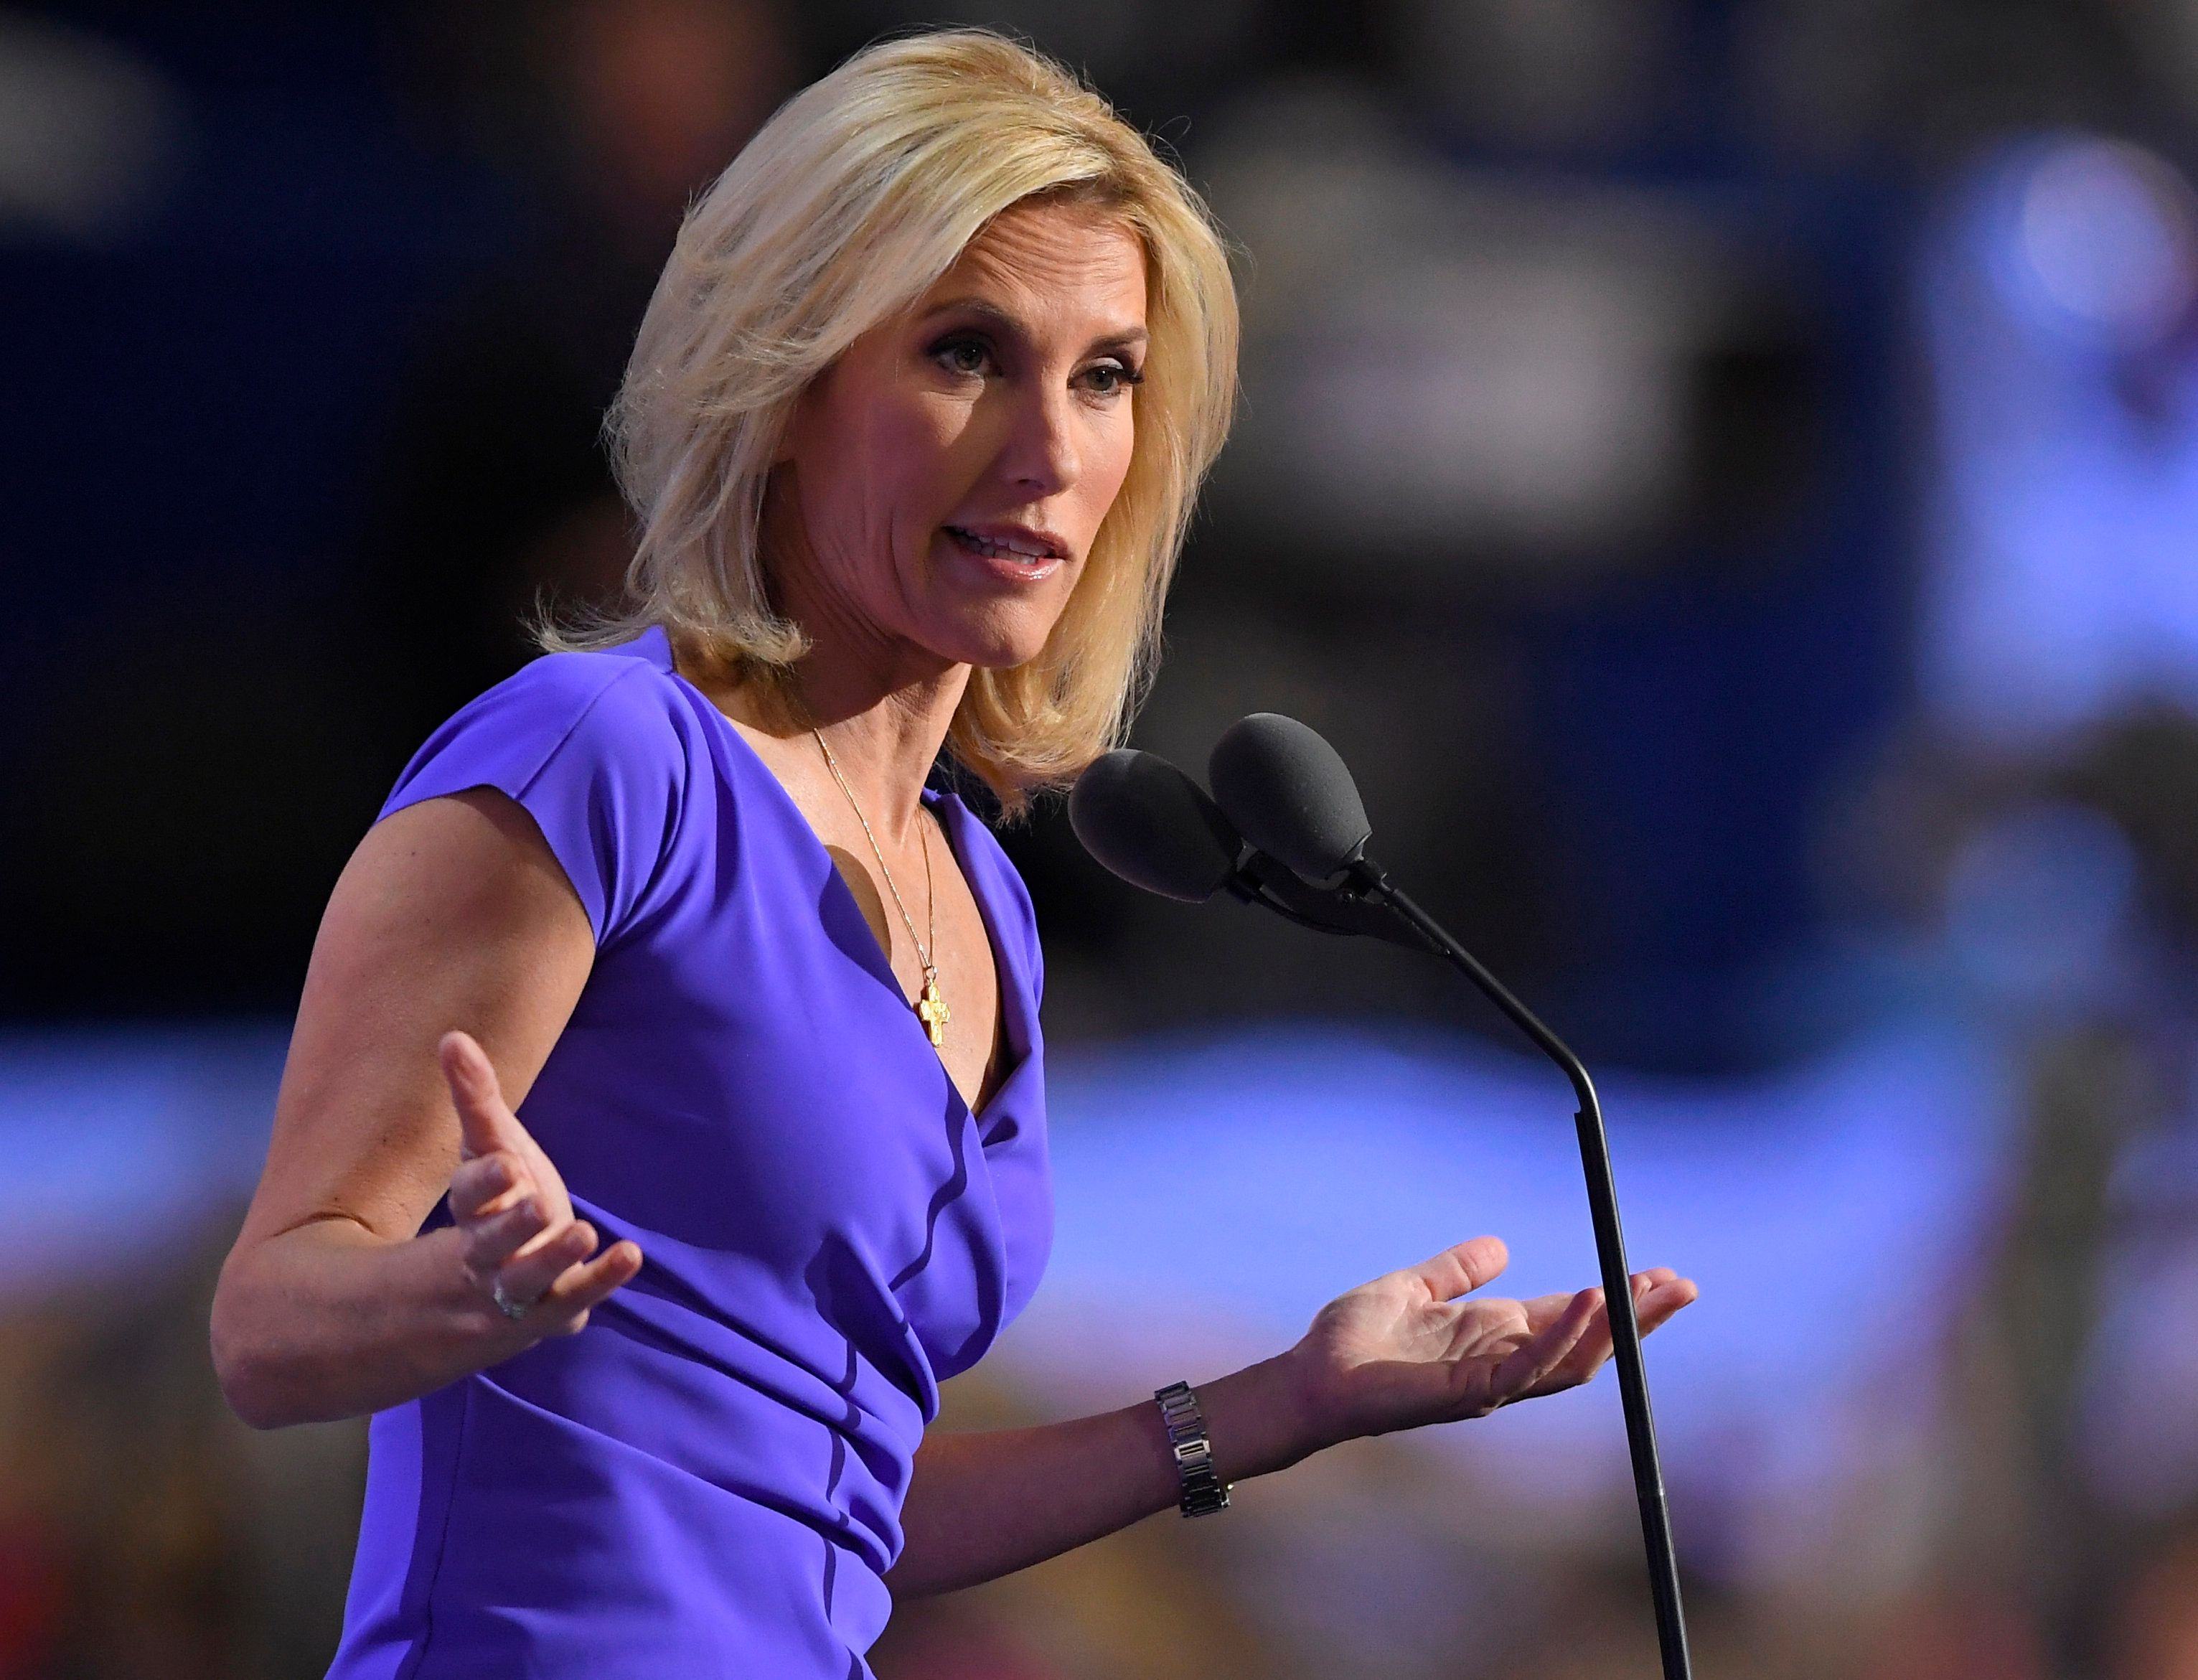 "FILE - In this Wednesday, July 20, 2016, file photo, conservative political commentator Laura Ingraham speaks during the third day of the Republican National Convention in Cleveland. Ingraham returned to Fox News Channel, Monday, April 9, 2018, with a passionate speech about what she called ""Stalinist"" liberal bullies attempting to stifle the free speech of conservatives. Several advertisers have dropped her program after she tweeted about a Parkland, Florida school shooting survivor supposedly whining about colleges he didn't get accepted into. (AP Photo/Mark J. Terrill, File)"